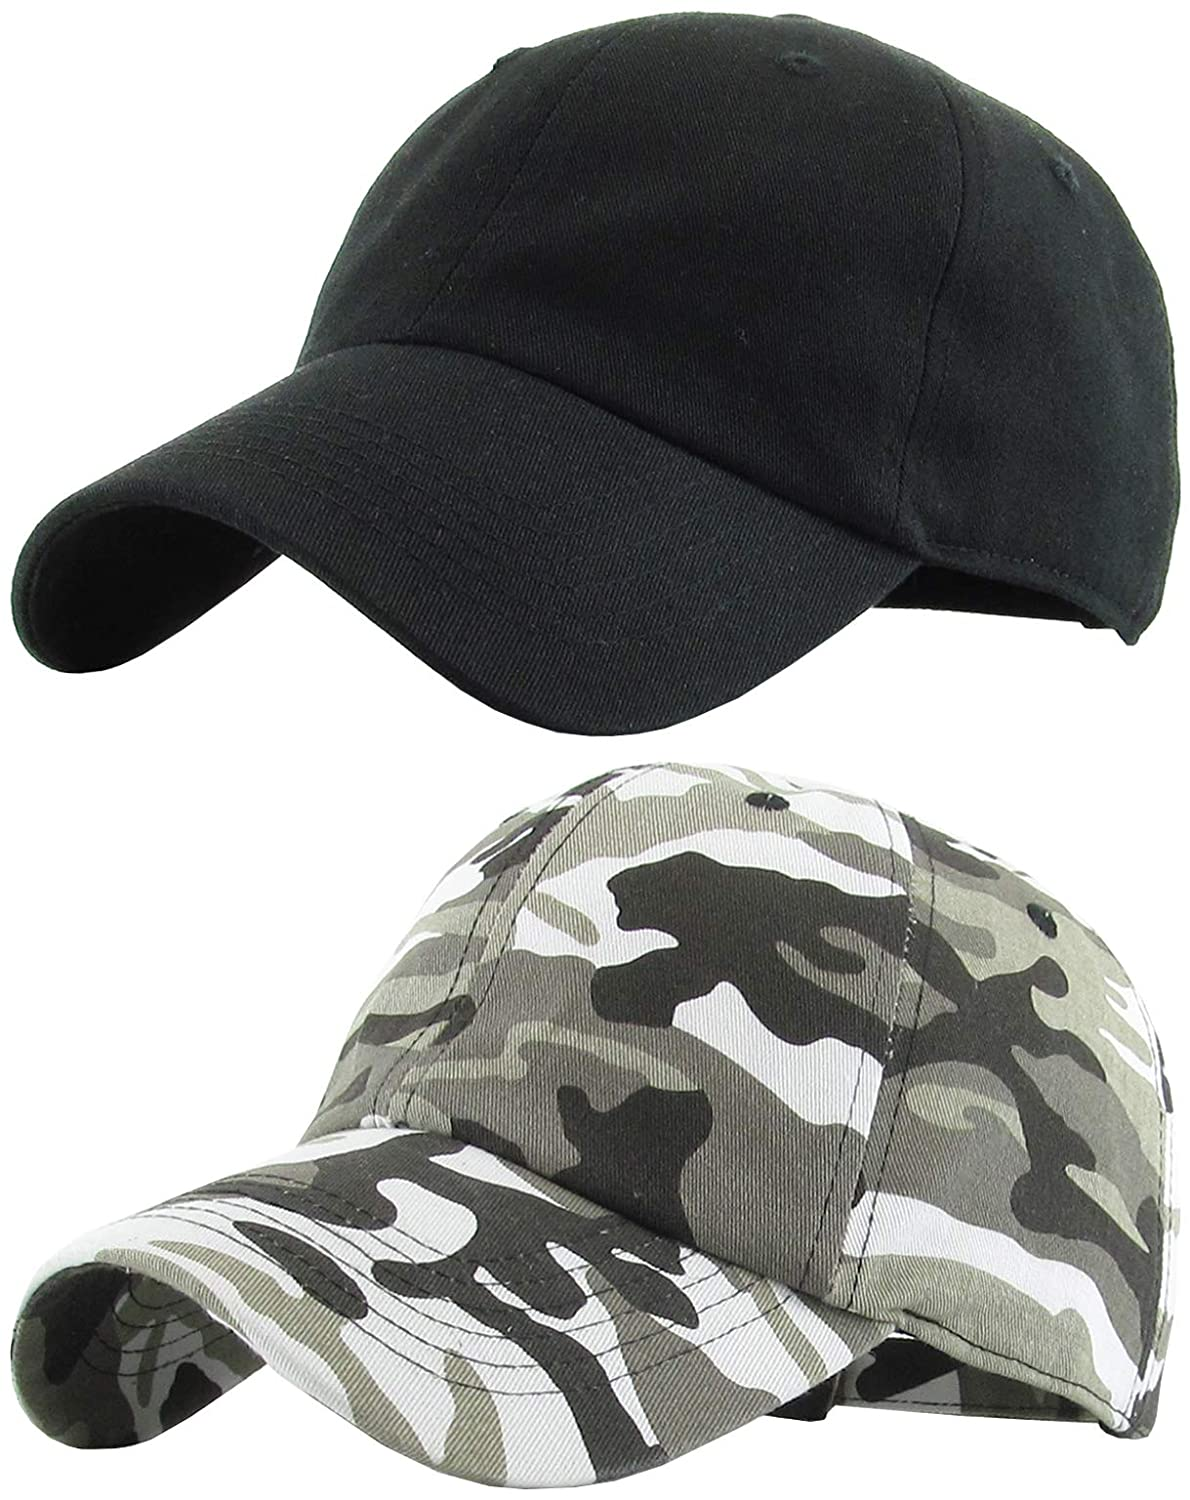 481b8e019 Funky Junque Dad Hat Adjustable Unstructured Polo Style Low Profile  Baseball Cap